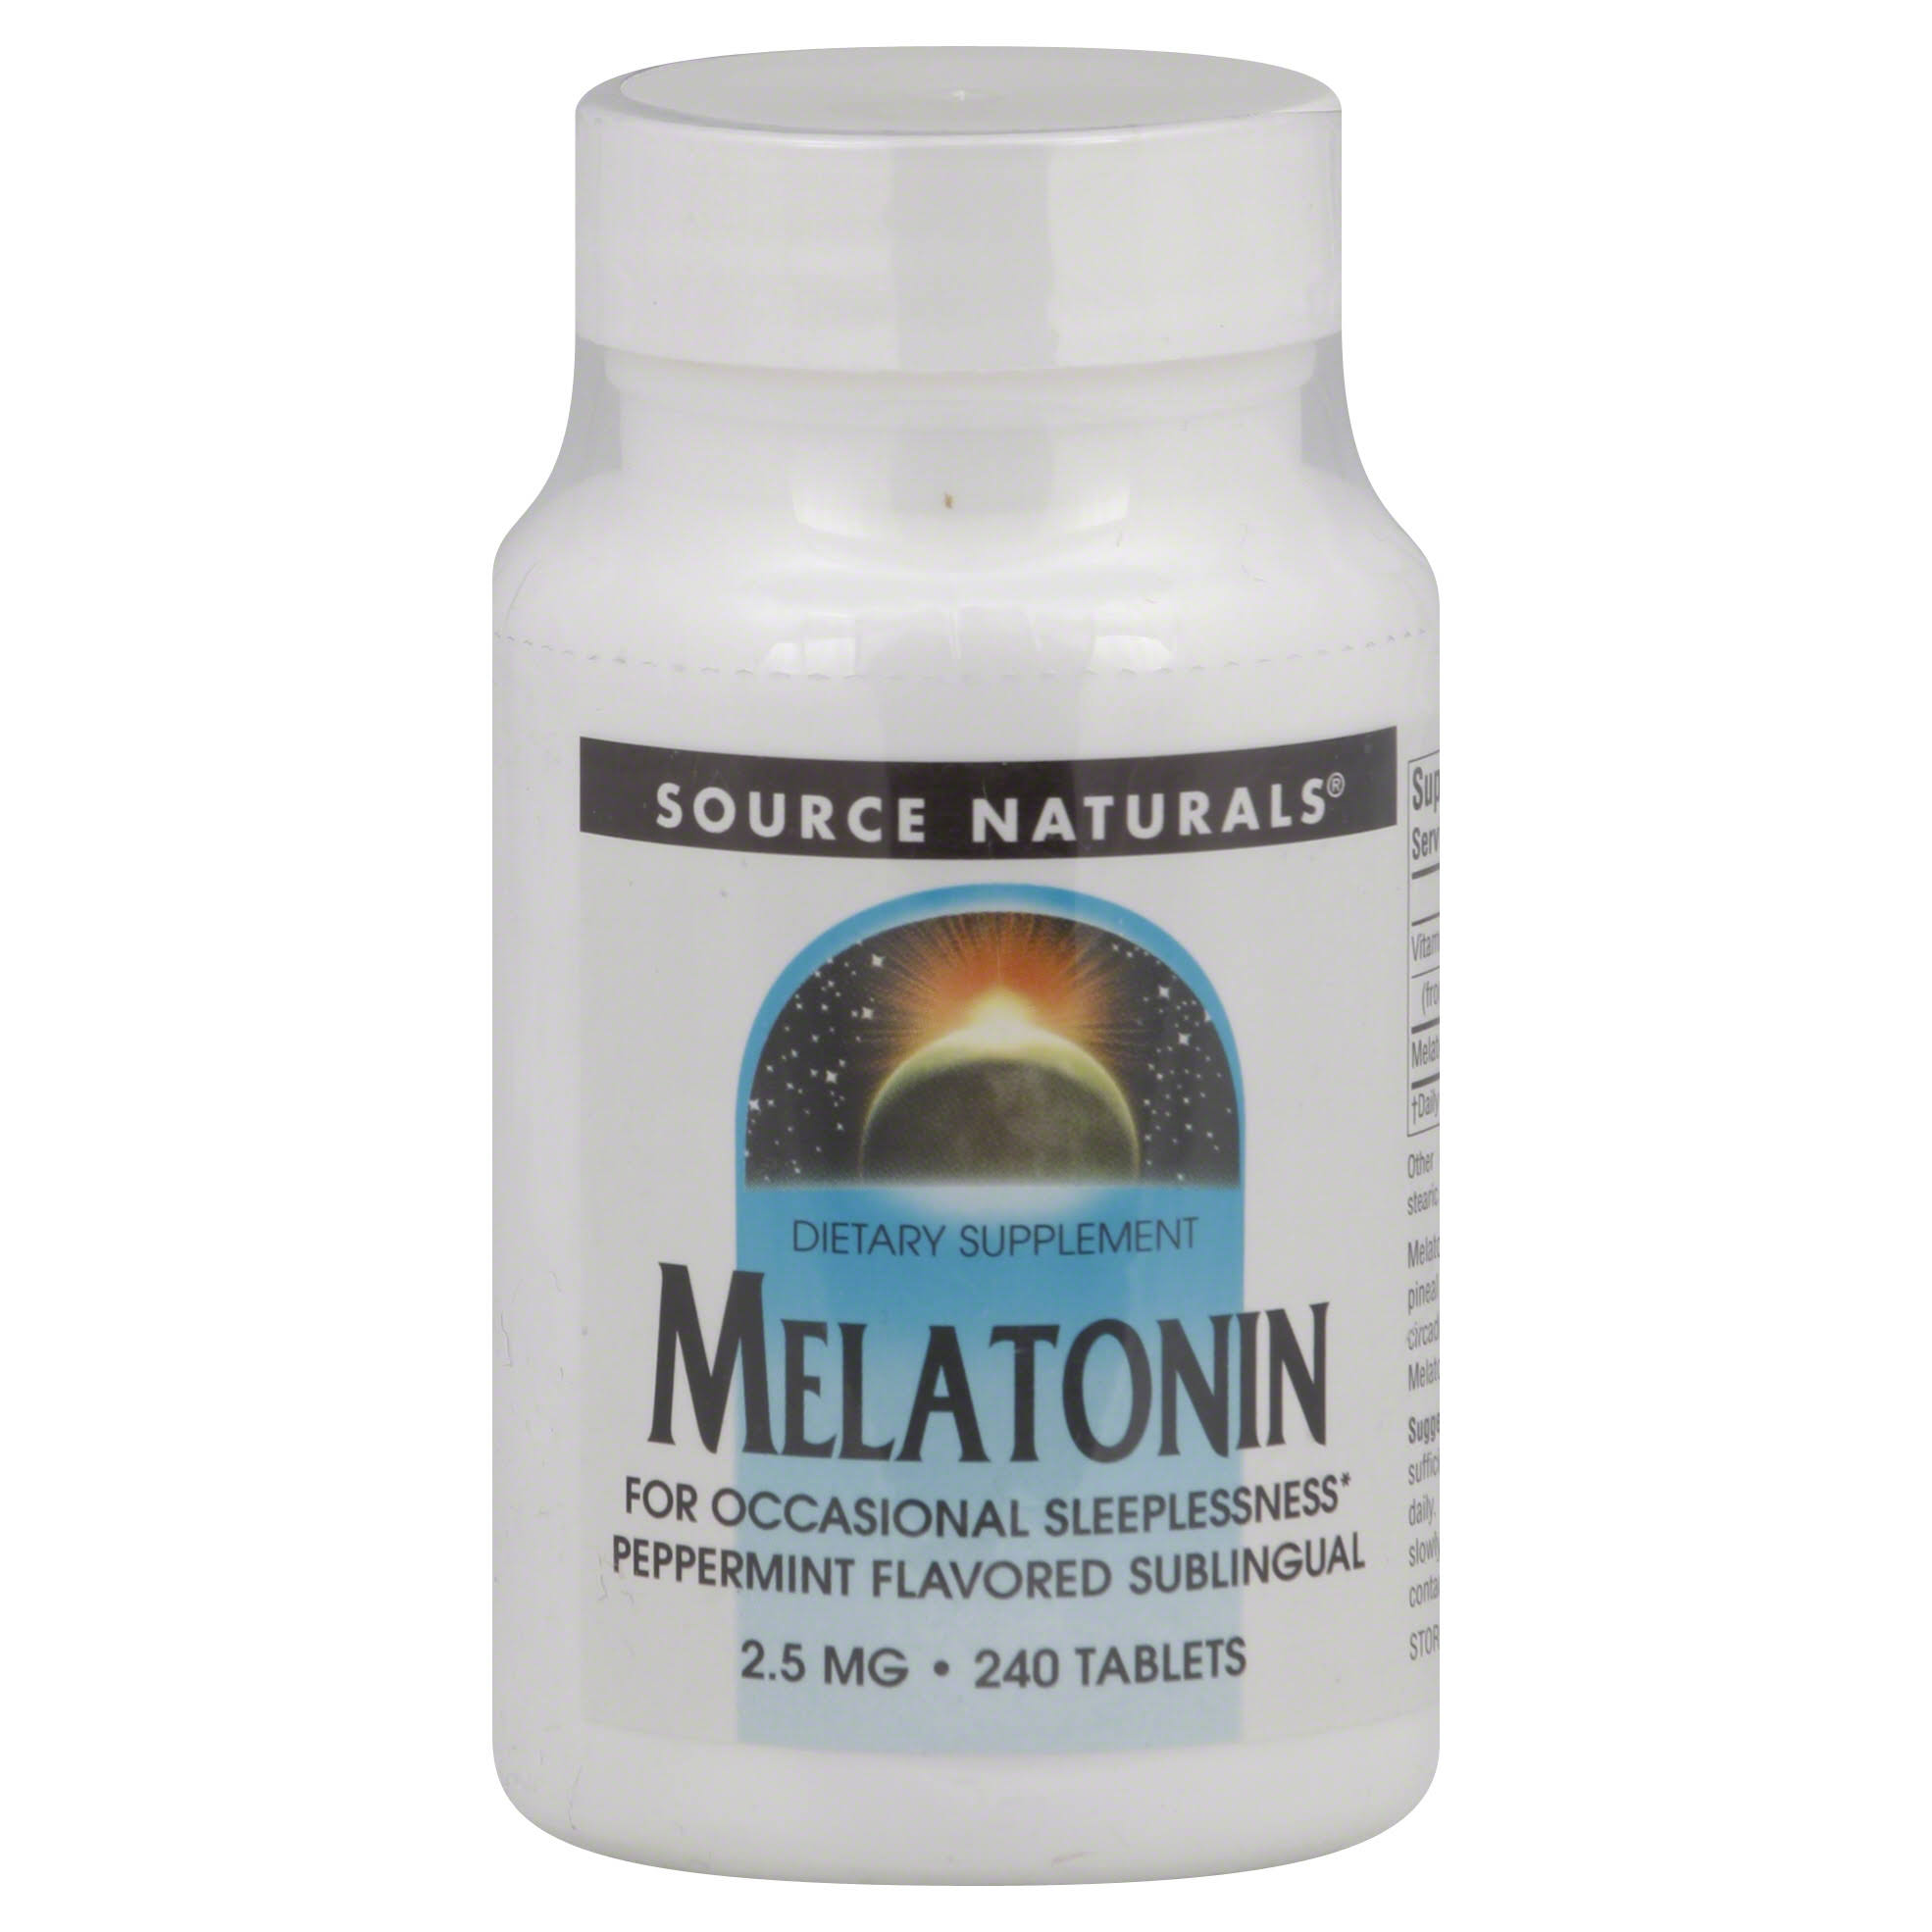 Source Naturals Melatonin 2.5mg Dietary Supplement - Peppermint Flavour, 240 Tablets